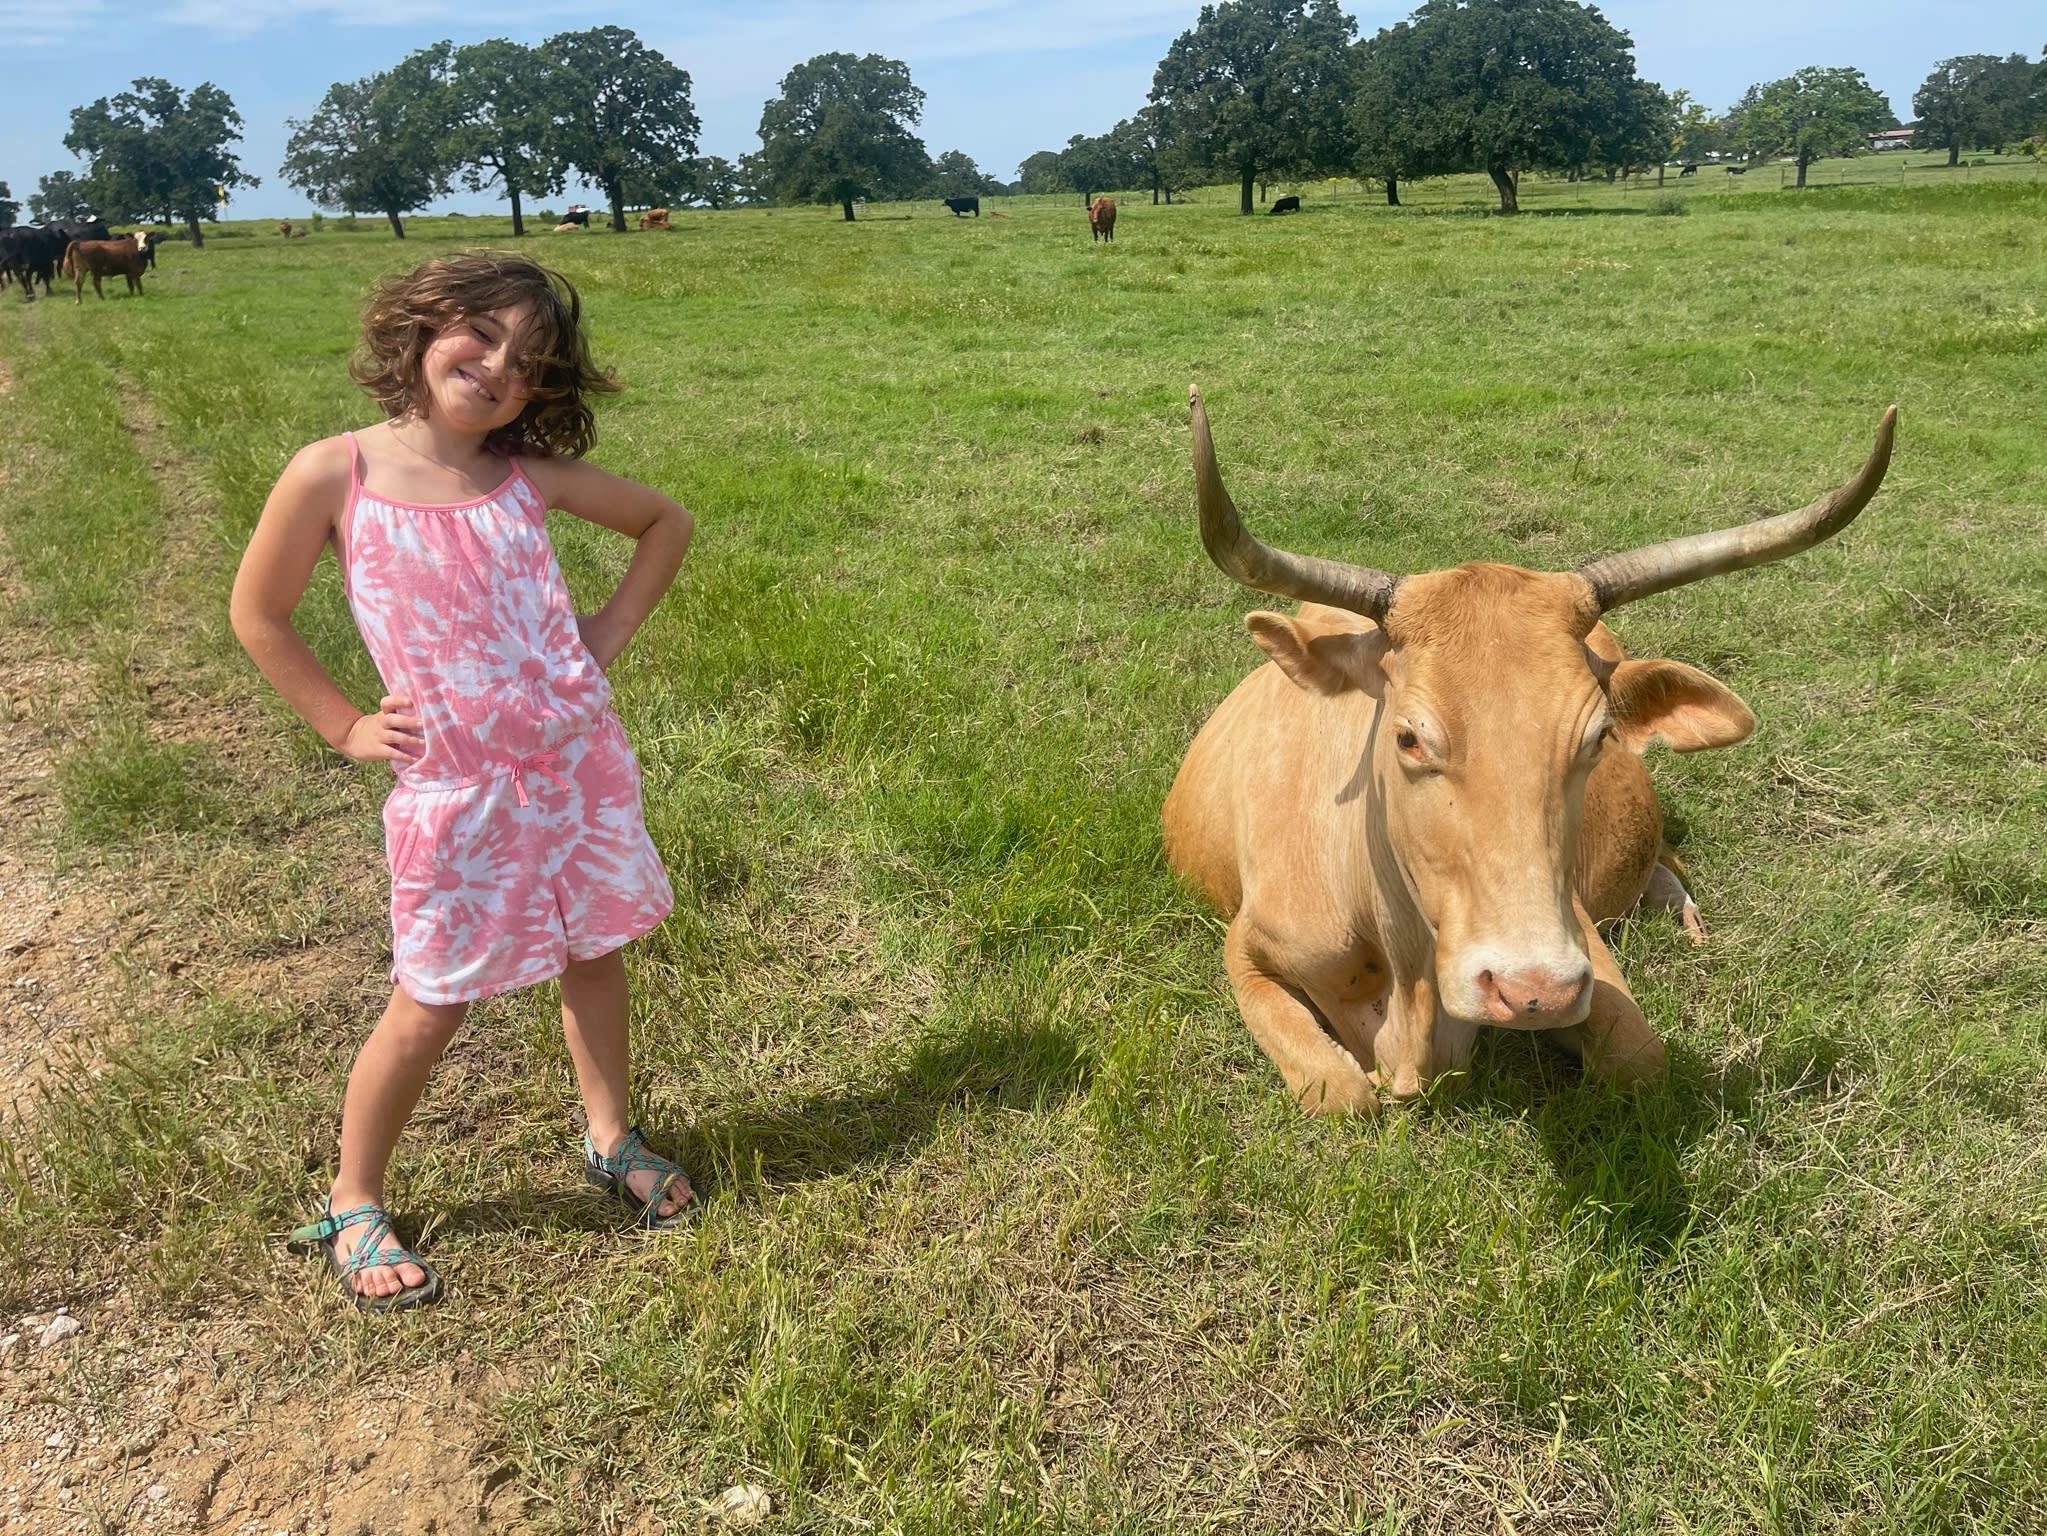 girl standing next to cow